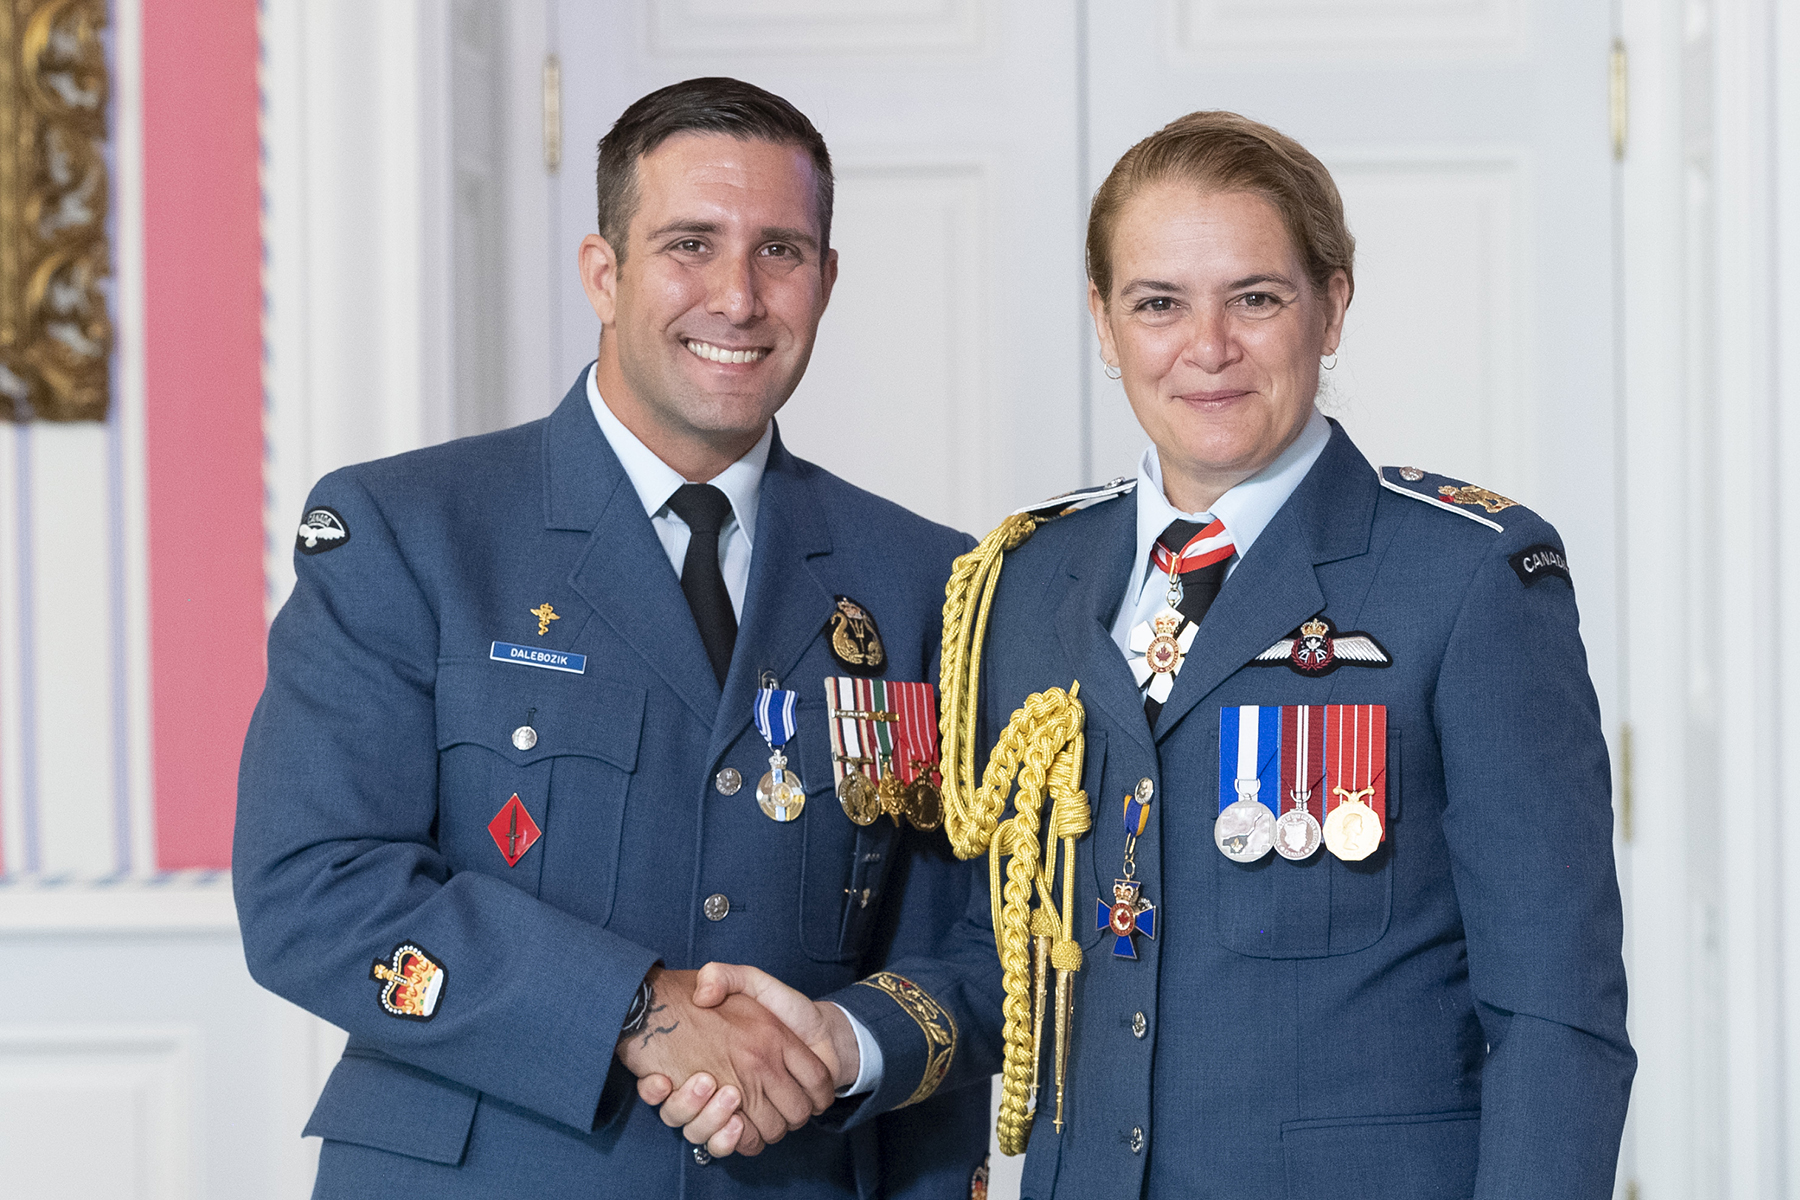 A woman and a man, both wearing blue military uniforms with medals, shake hands and smile.